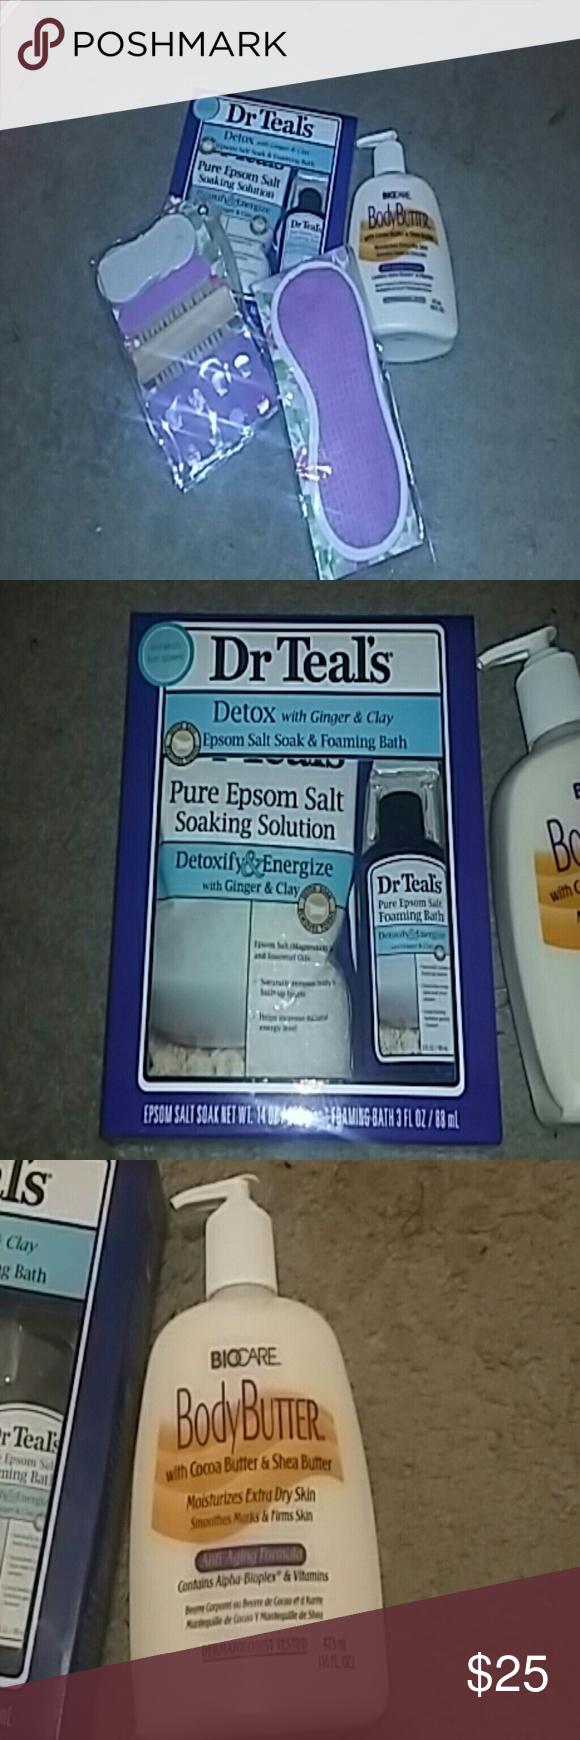 Spa day bundle. Bundle Includes the following: One eye mask. Pedicure kit. One body butter lotion. One Dr. Teal's detox Epsom salt and foaming    Great way to relax and have a spa day at home. Other